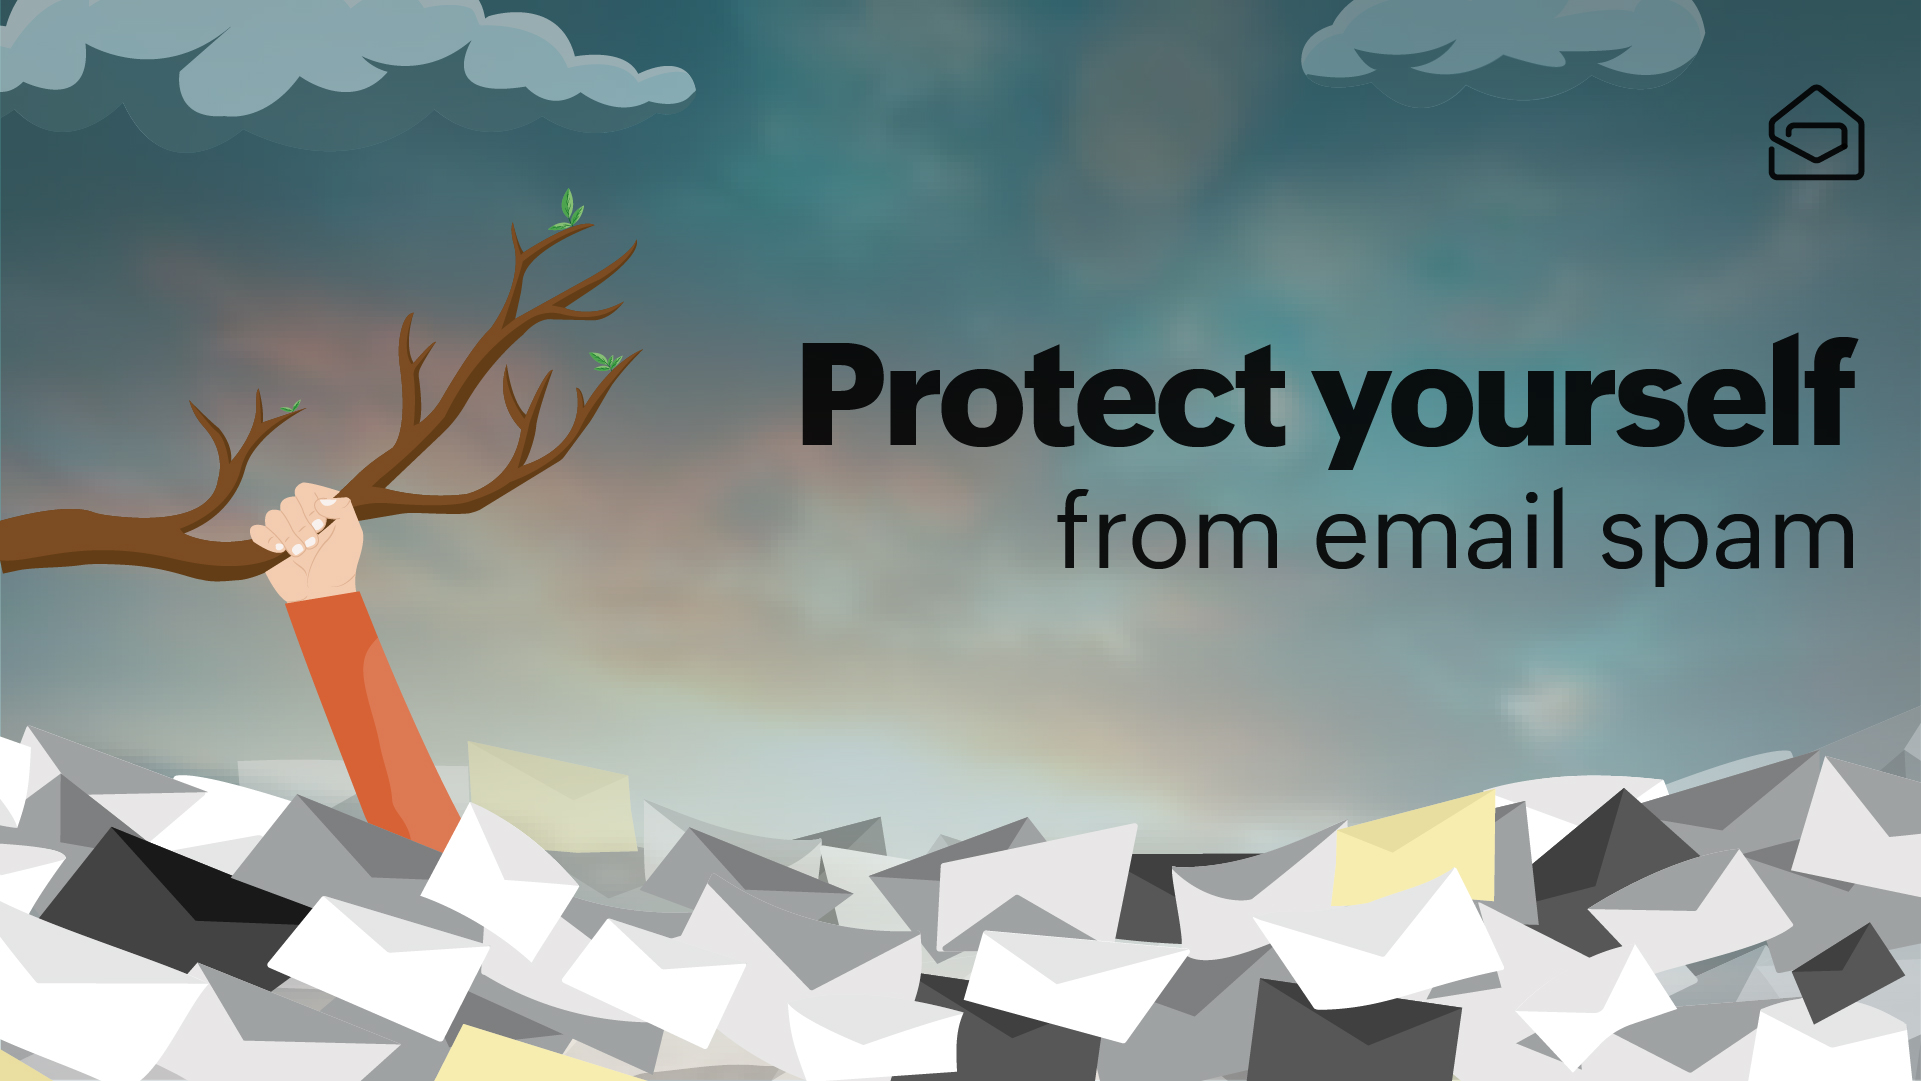 Think Twice: 5 tips to protect yourself from email spam